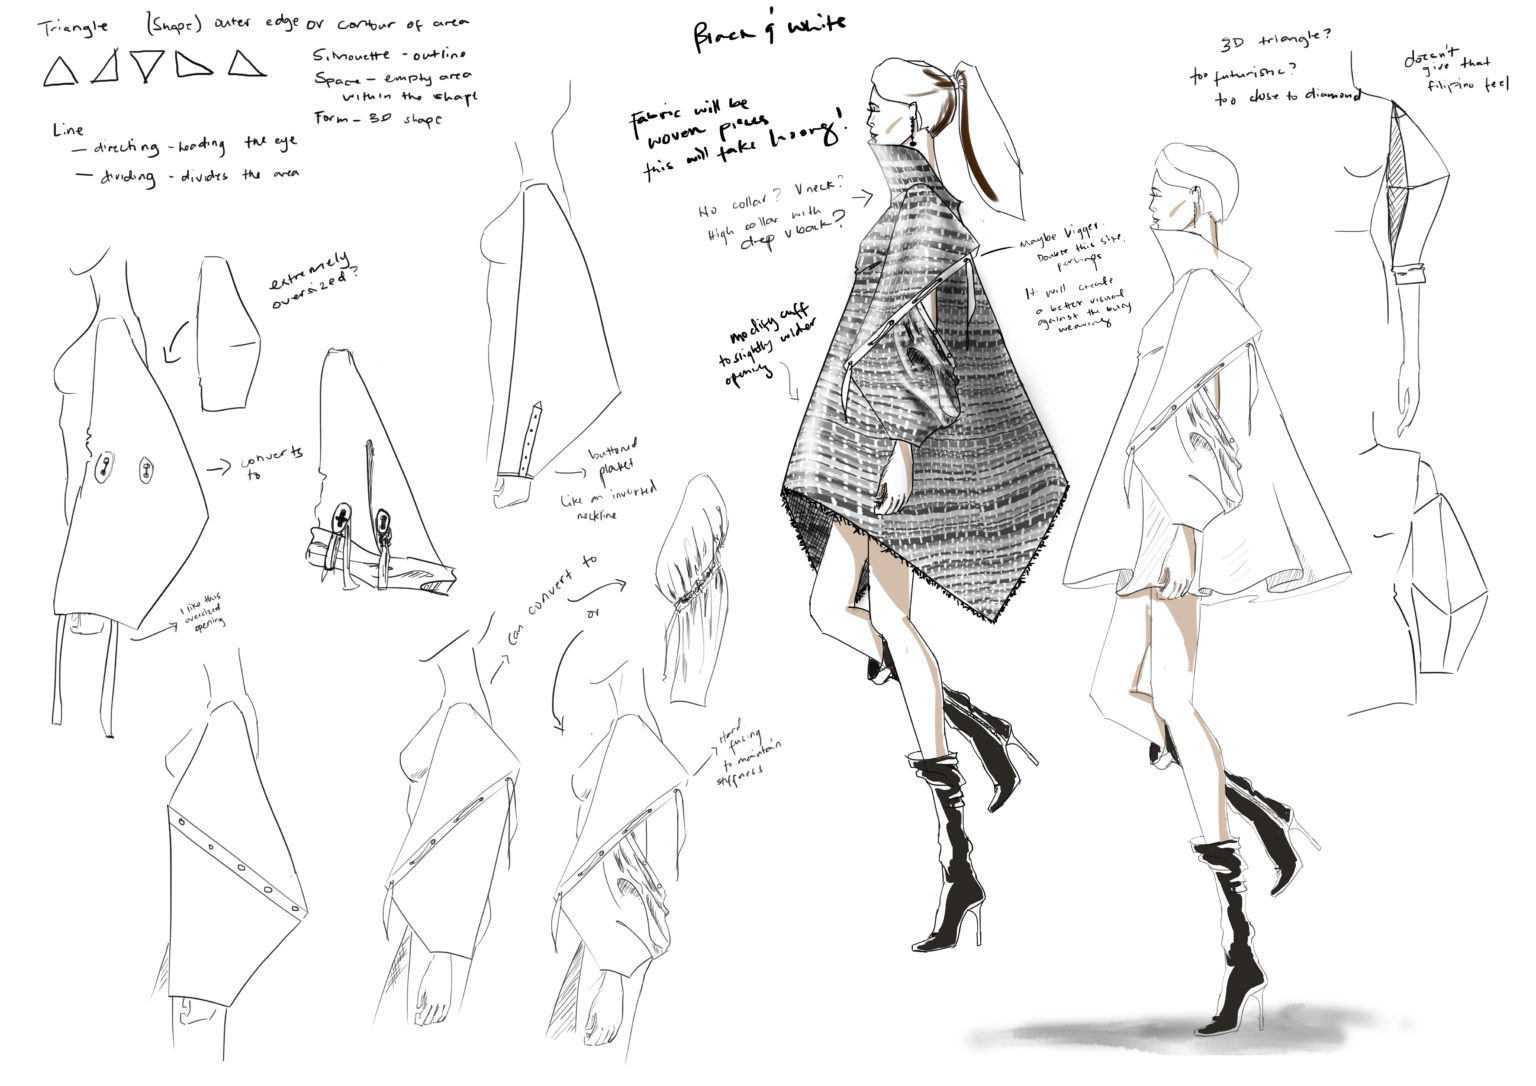 Draft 4. Exploring triangle shape through volume and detailed sleeves